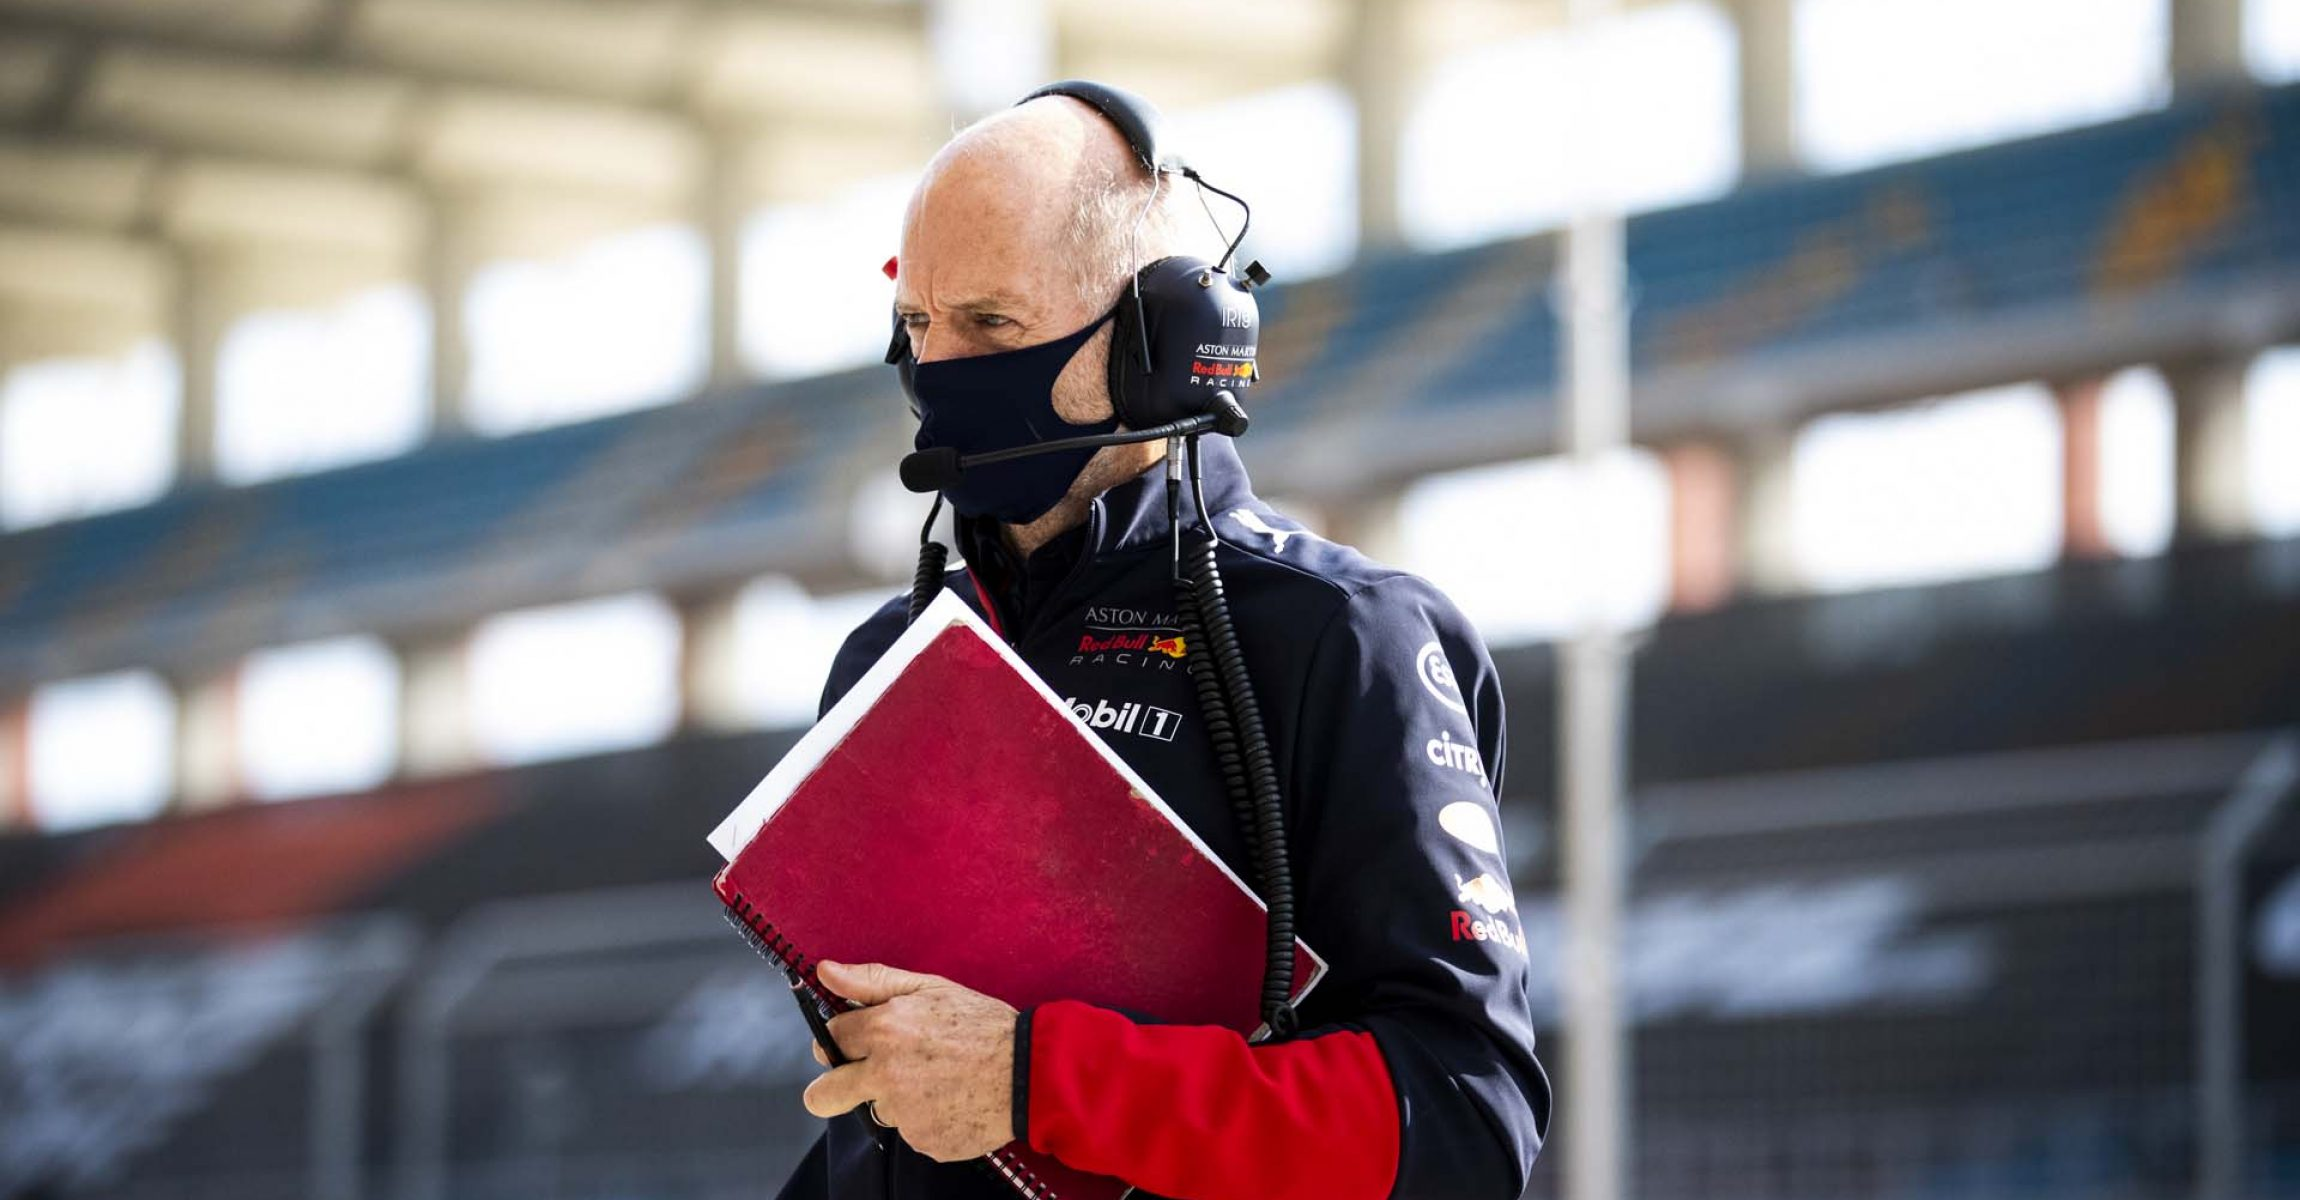 ISTANBUL, TURKEY - NOVEMBER 13: Adrian Newey, the Chief Technical Officer of Red Bull Racing looks on from the pitlane during practice ahead of the F1 Grand Prix of Turkey at Intercity Istanbul Park on November 13, 2020 in Istanbul, Turkey. (Photo by Bryn Lennon/Getty Images)